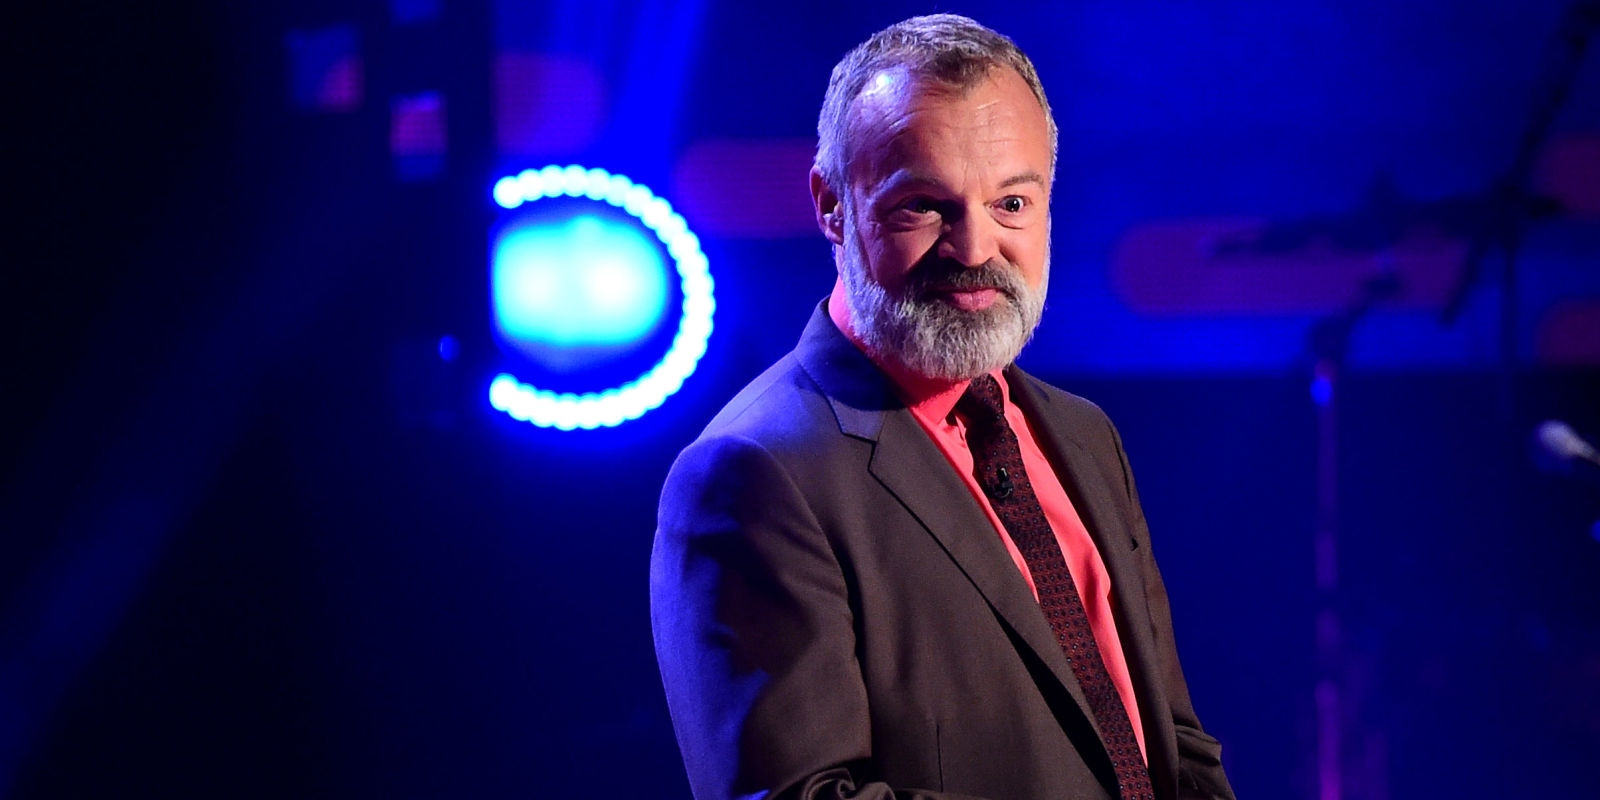 graham norton eurovisiongraham norton show, graham norton show subtitles, graham norton show benedict cumberbatch, graham norton show episodes, graham norton boyfriend, graham norton wiki, graham norton show hugh jackman, graham norton show 2017, graham norton show season 20, graham norton show full, graham norton show cumberbatch, graham norton robbie williams, graham norton wife, graham norton eurovision, graham norton show s20, graham norton show will smith, graham norton twitter, graham norton youtube, graham norton net worth, graham norton show s20e15